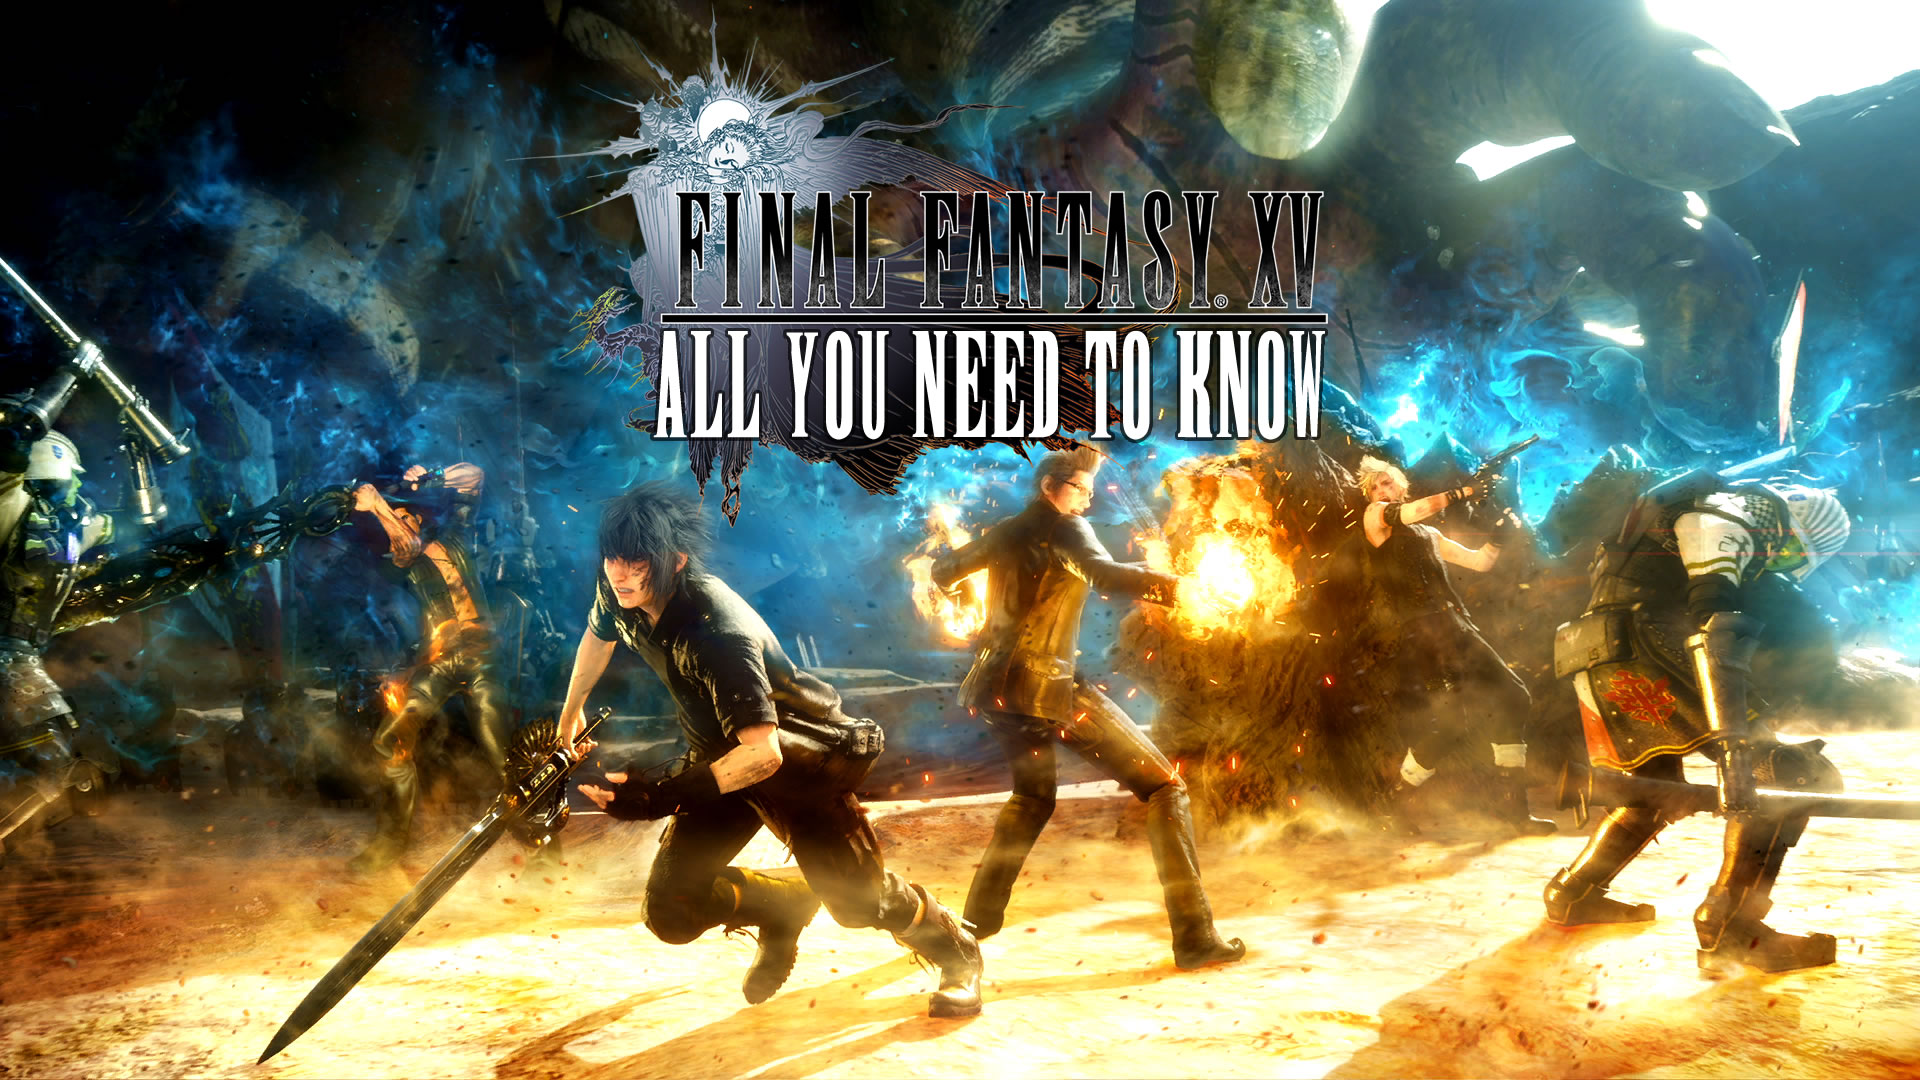 Final Fantasy XV All You Need To Know